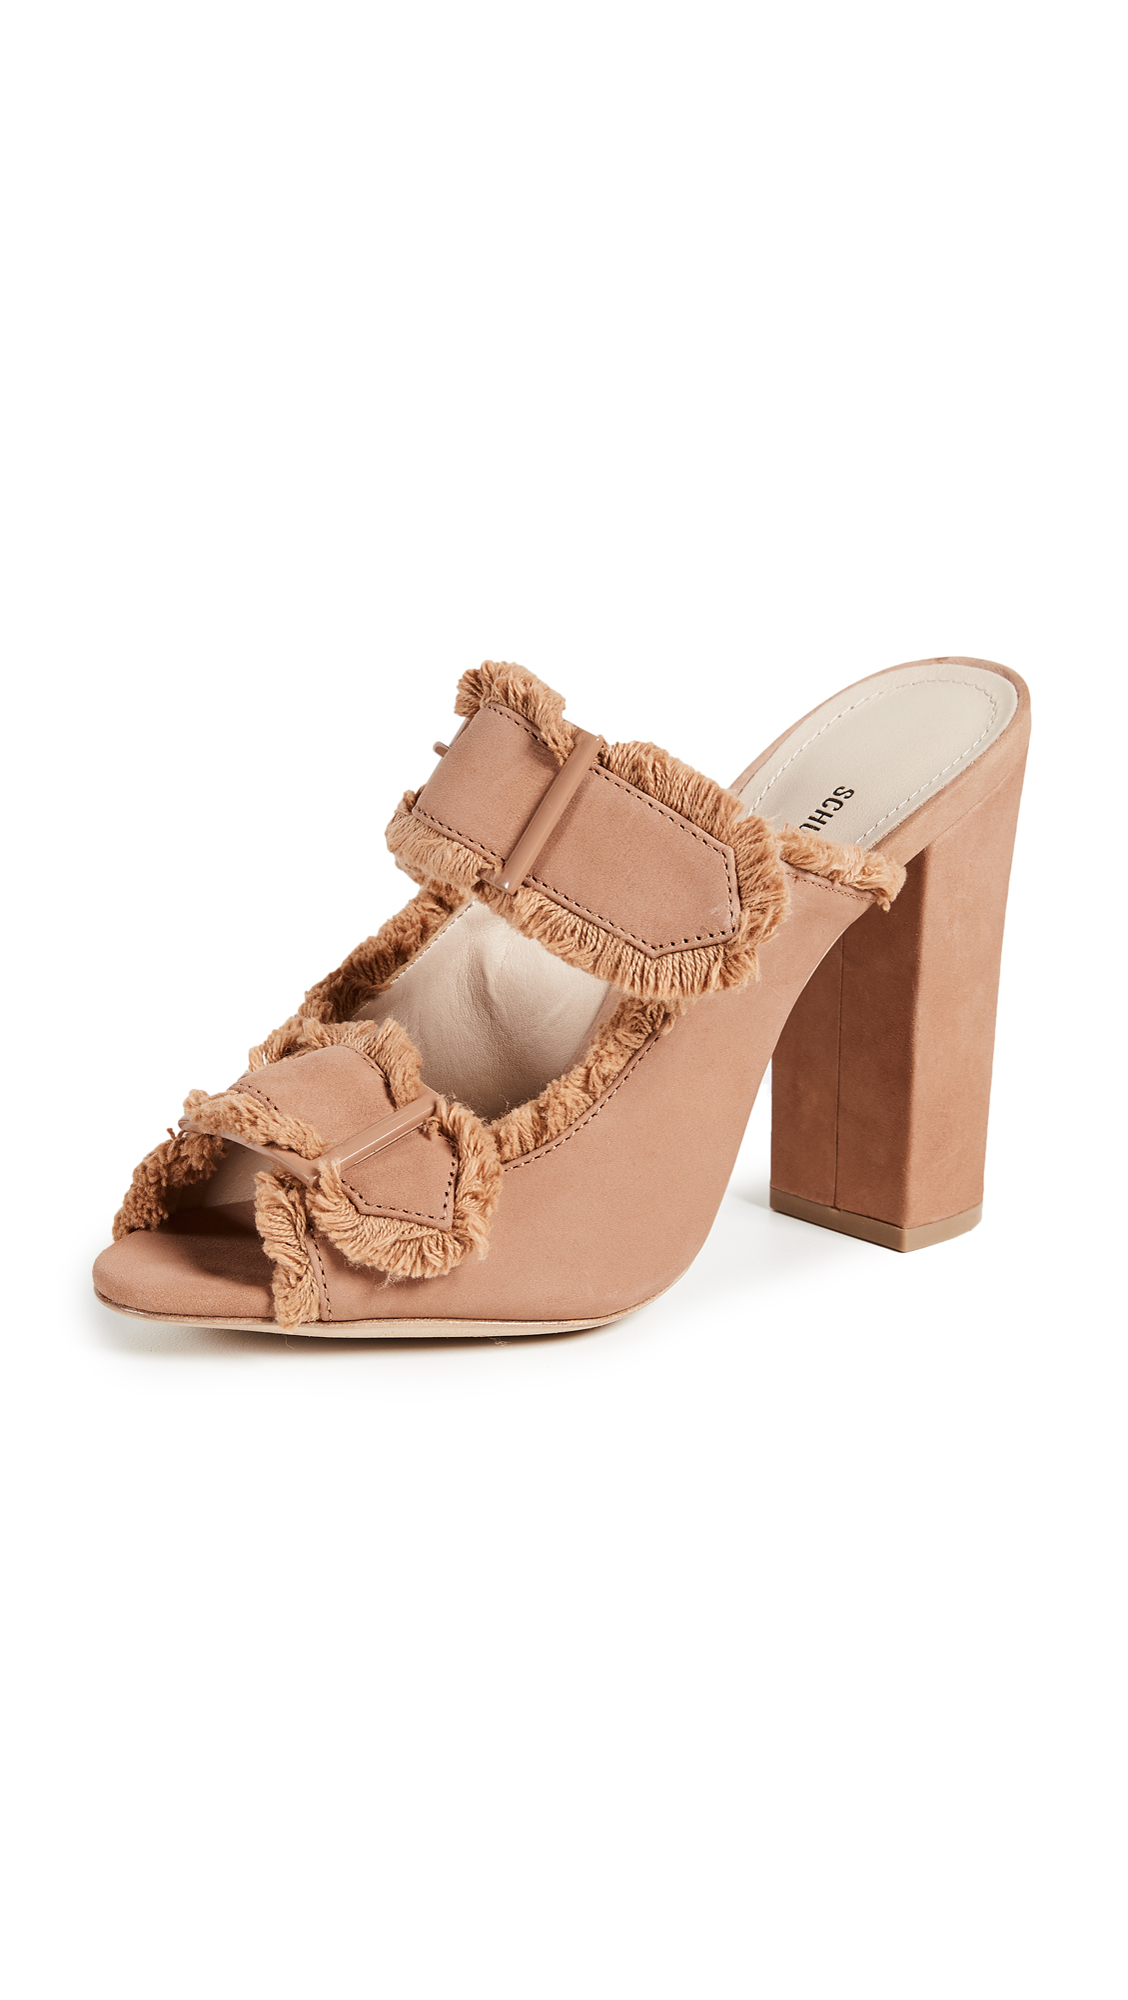 Schutz Sabriely Block Heel Sandals - Toasted Nut